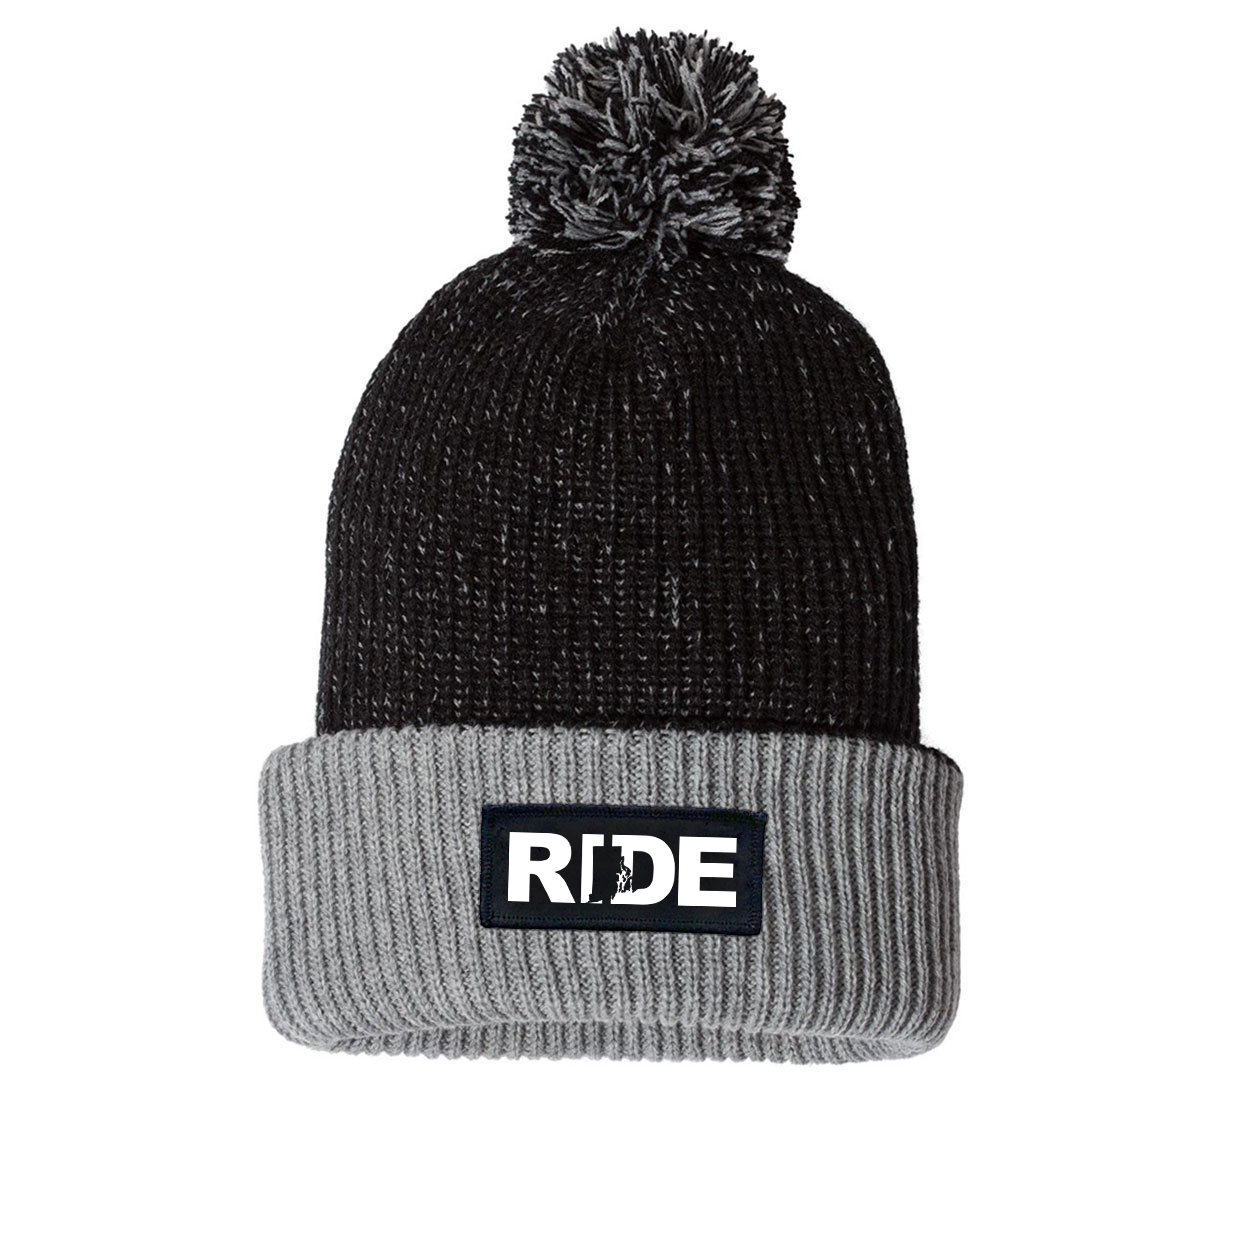 Ride Rhode Island Night Out Woven Patch Roll Up Pom Knit Beanie Black/Gray (White Logo)